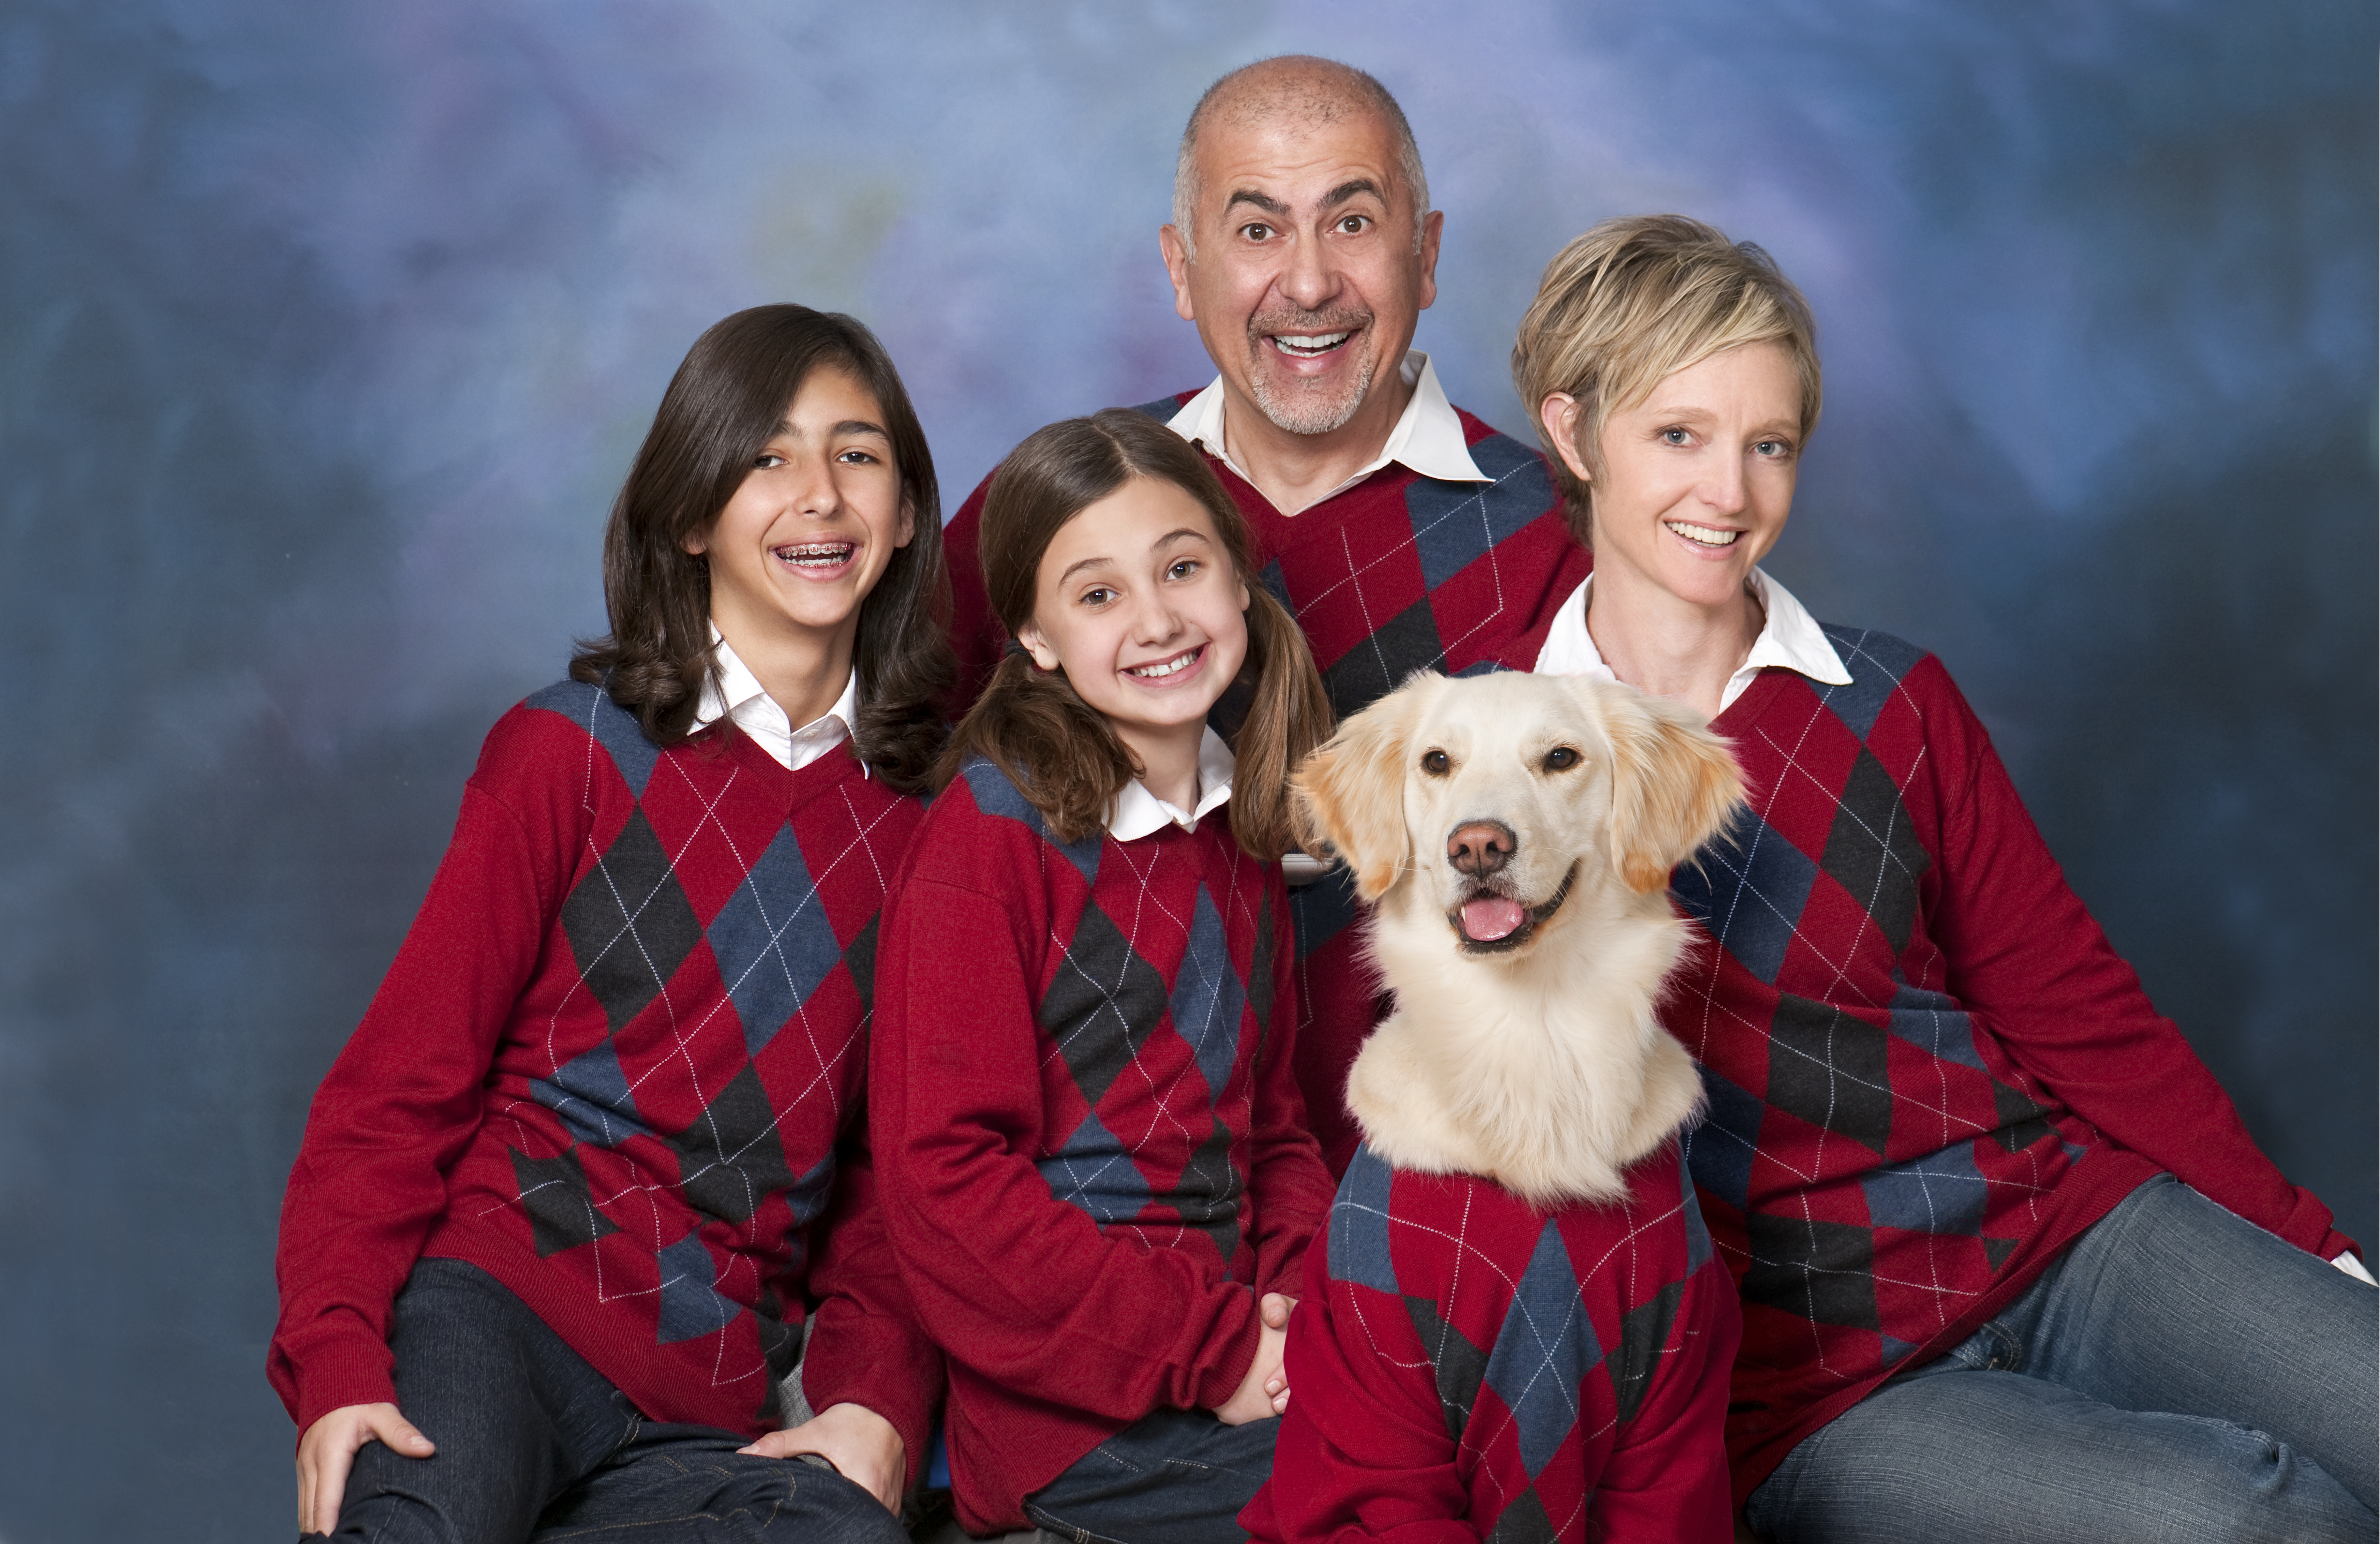 Christmas Family Portraits.What Your Family Christmas Picture Style Says About You